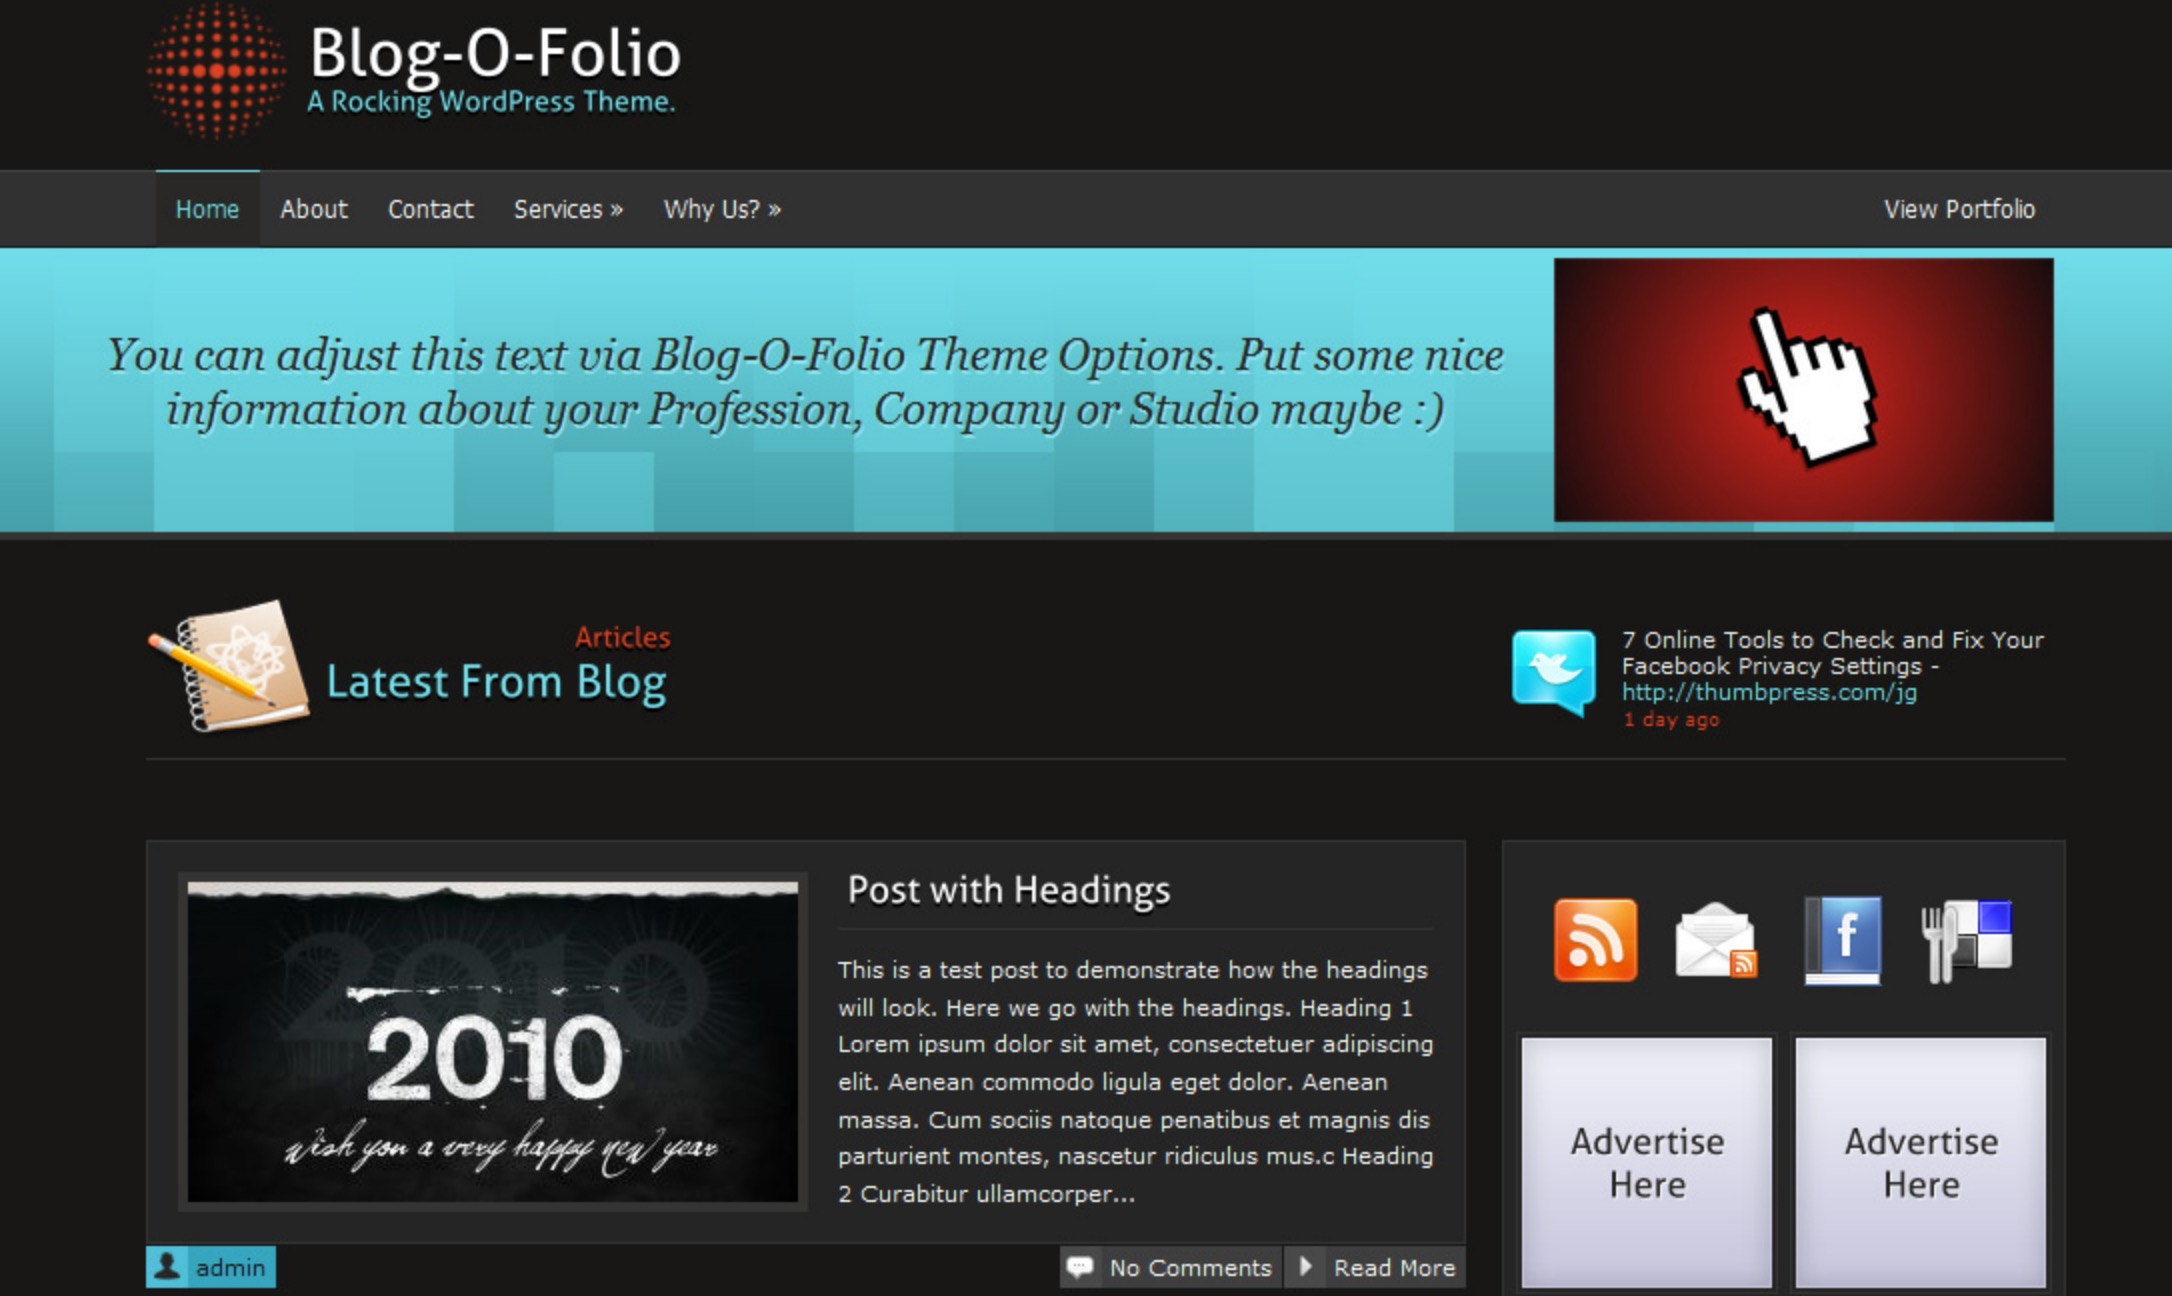 The Blog-O-Folio